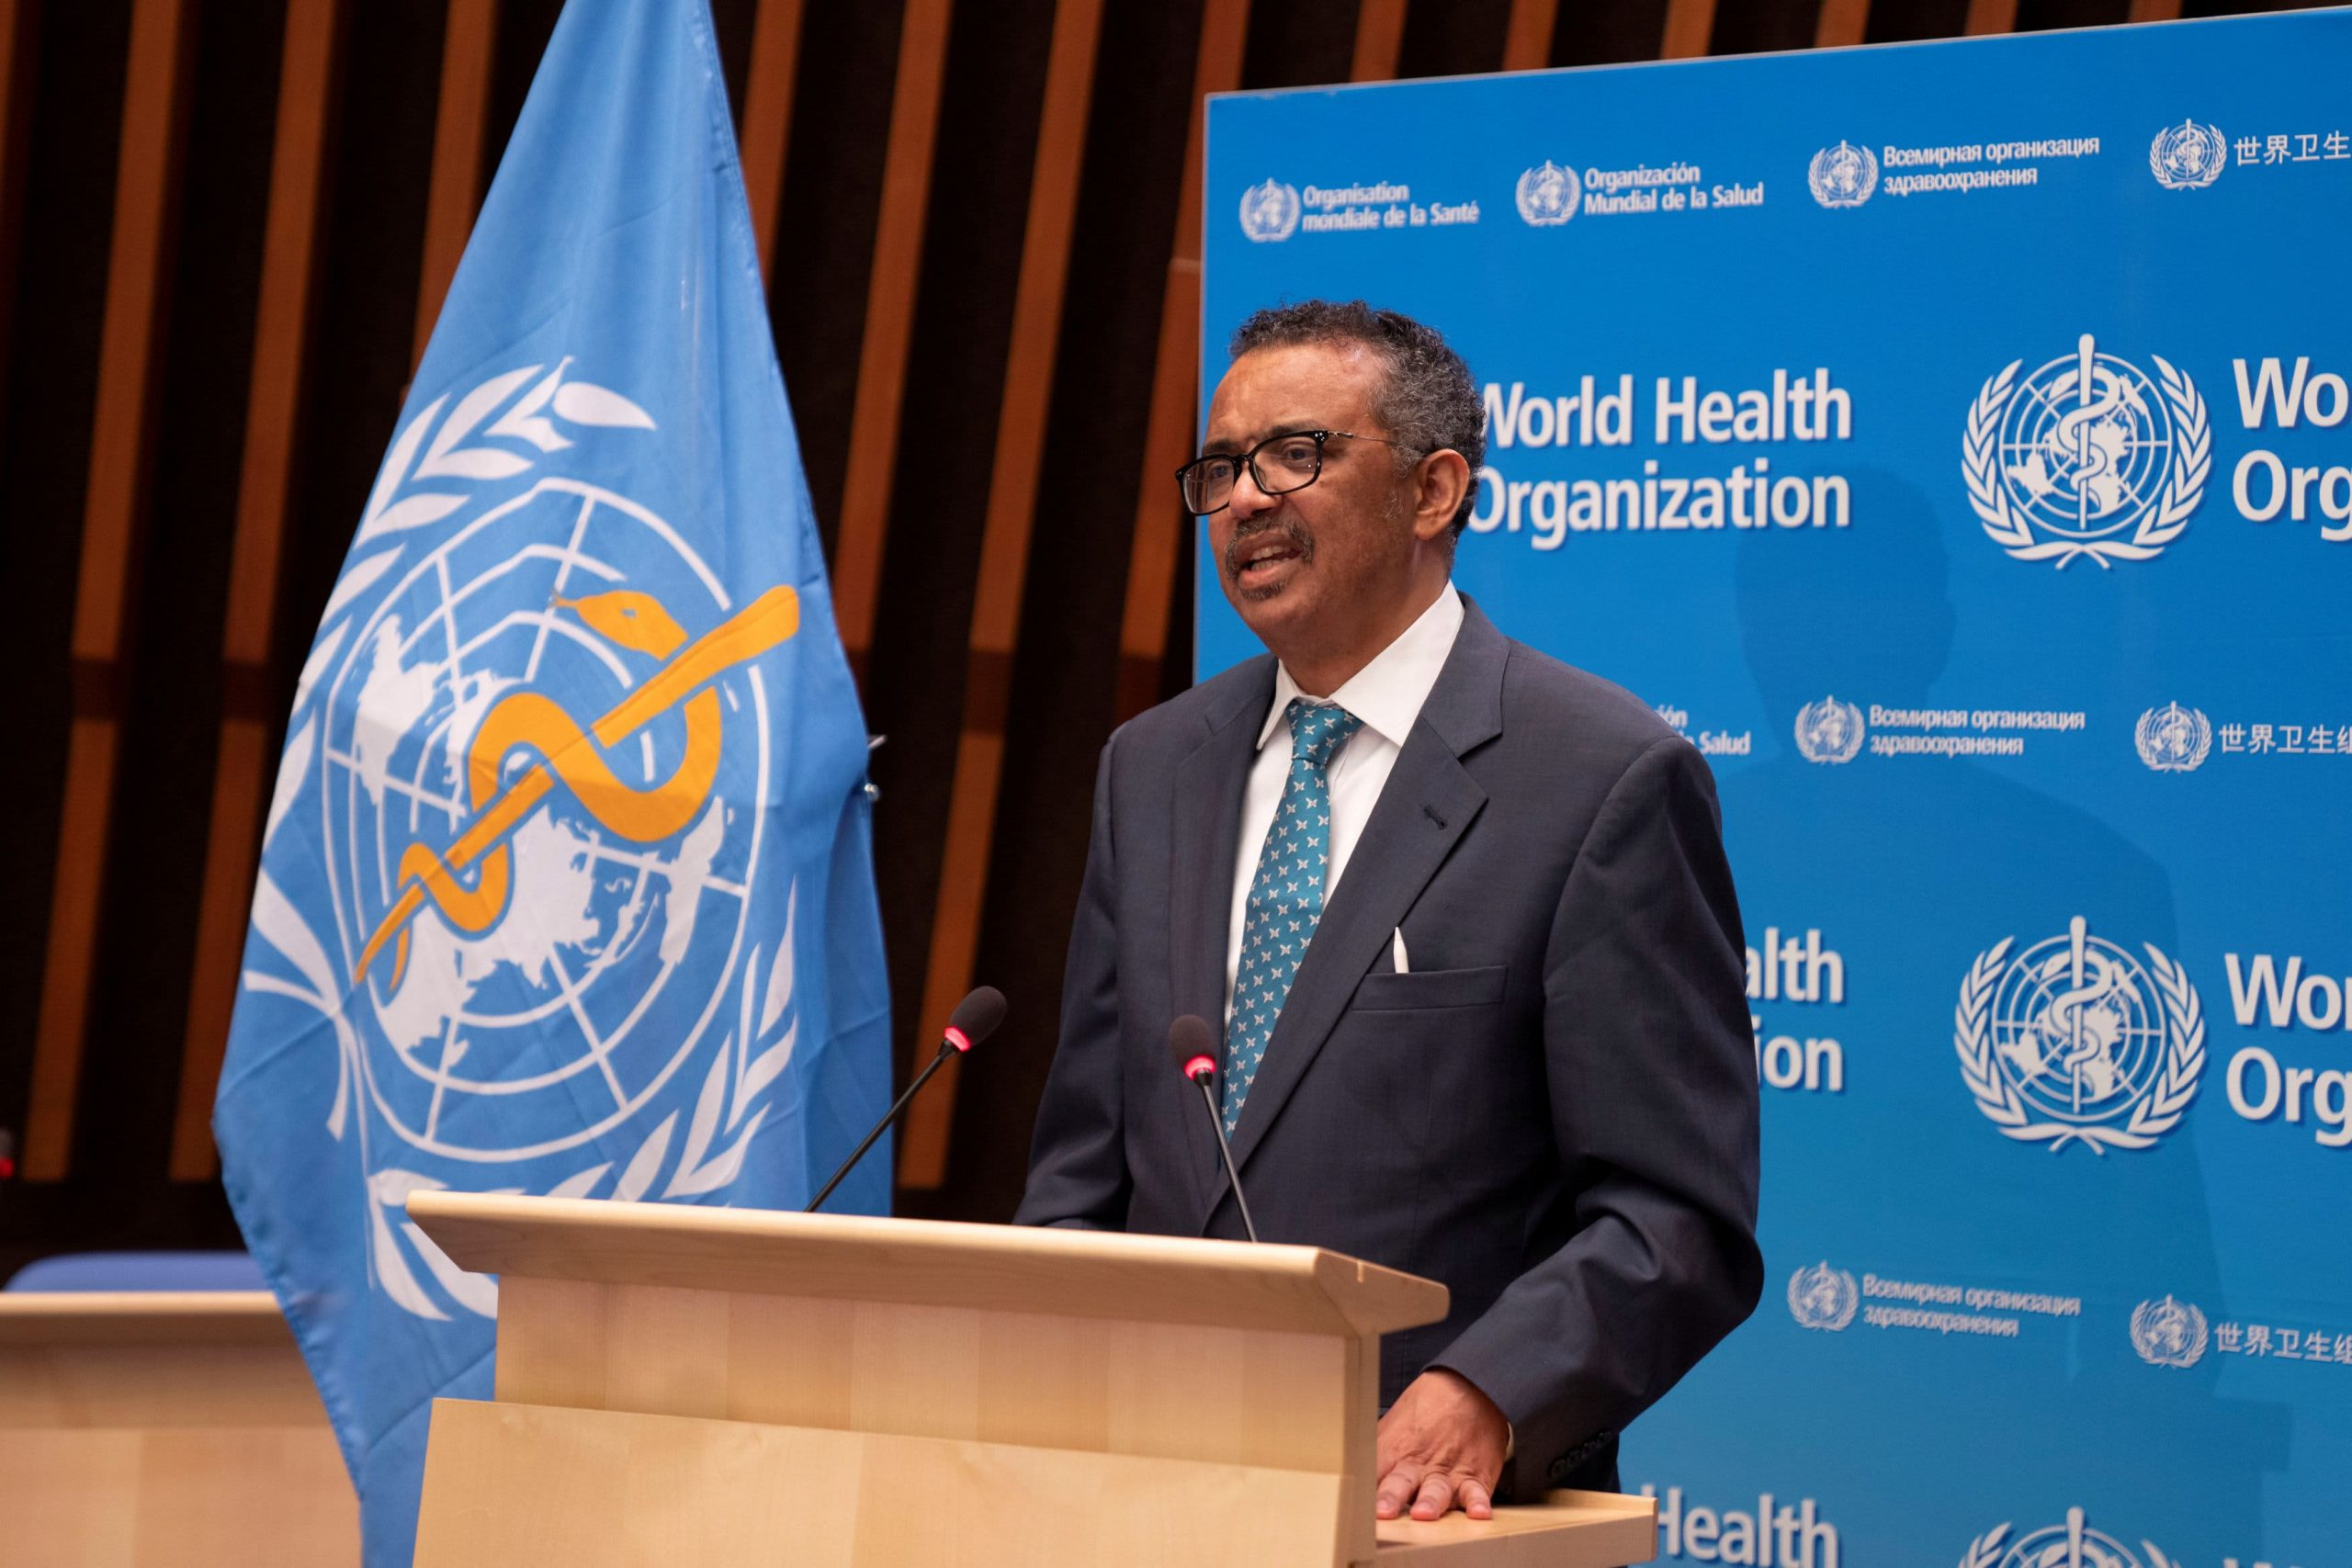 who-holds-press-convention-on-the-coronavirus-outbreak